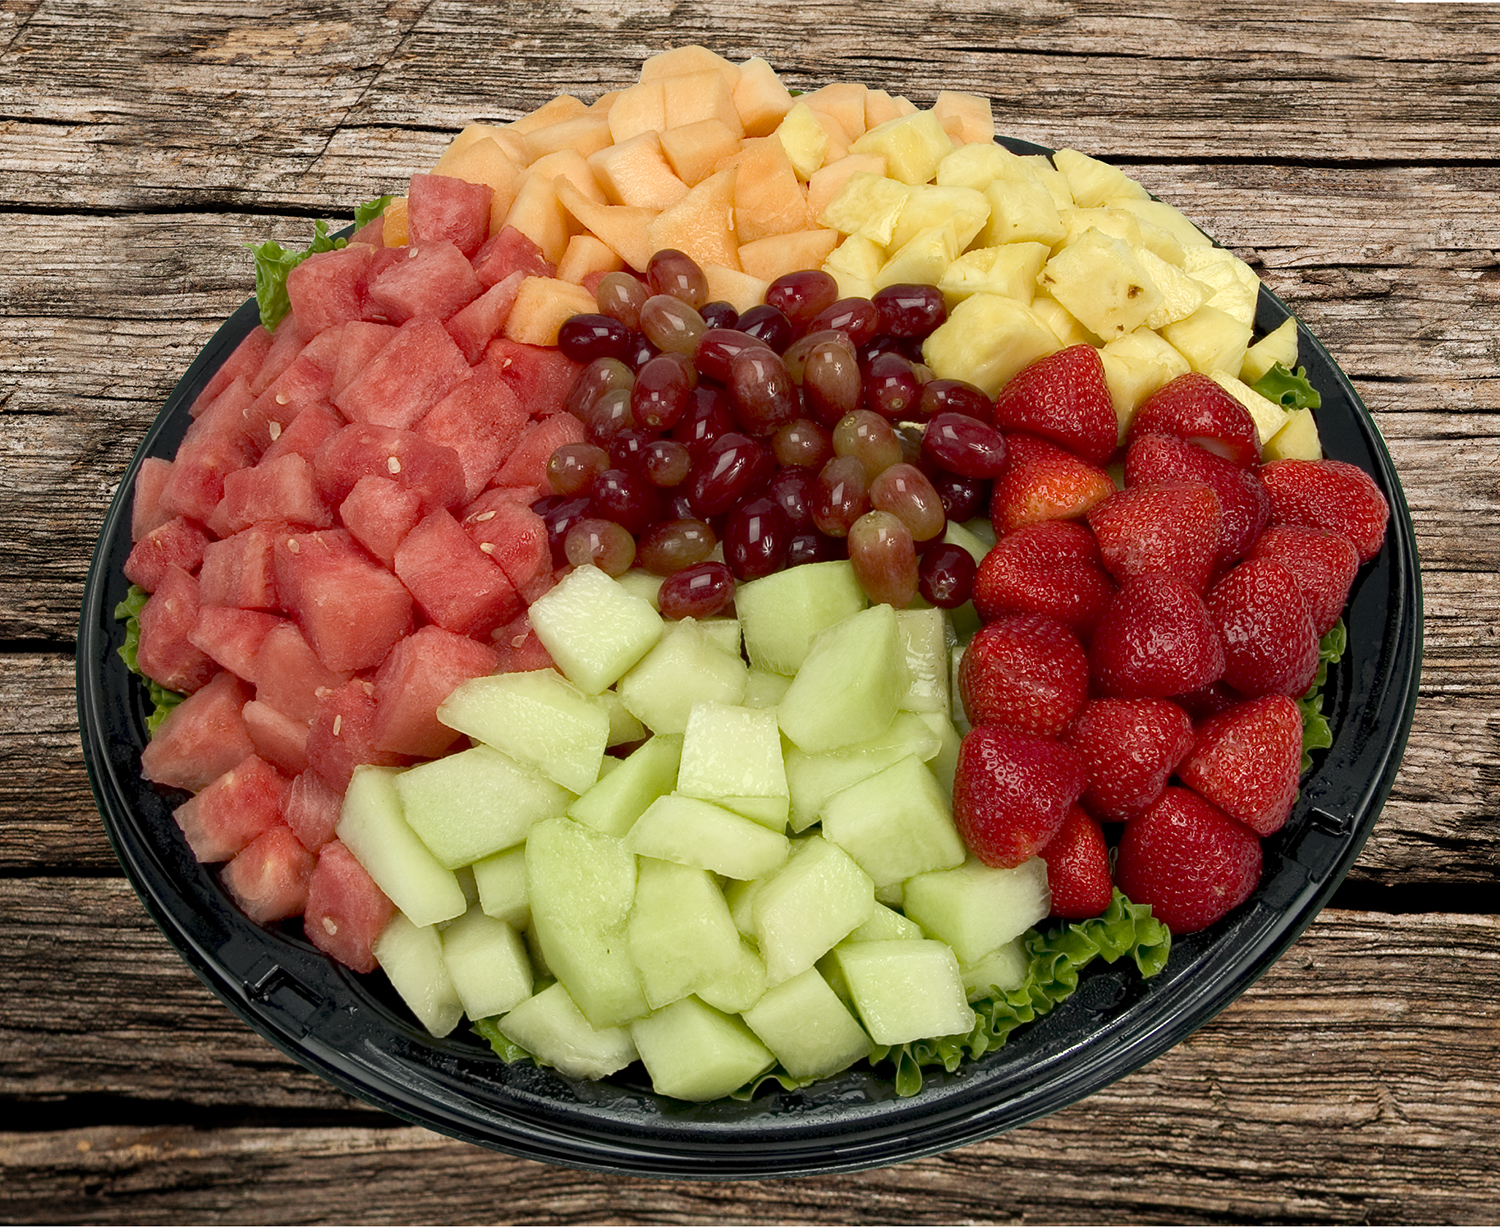 Produce Fruit Tray